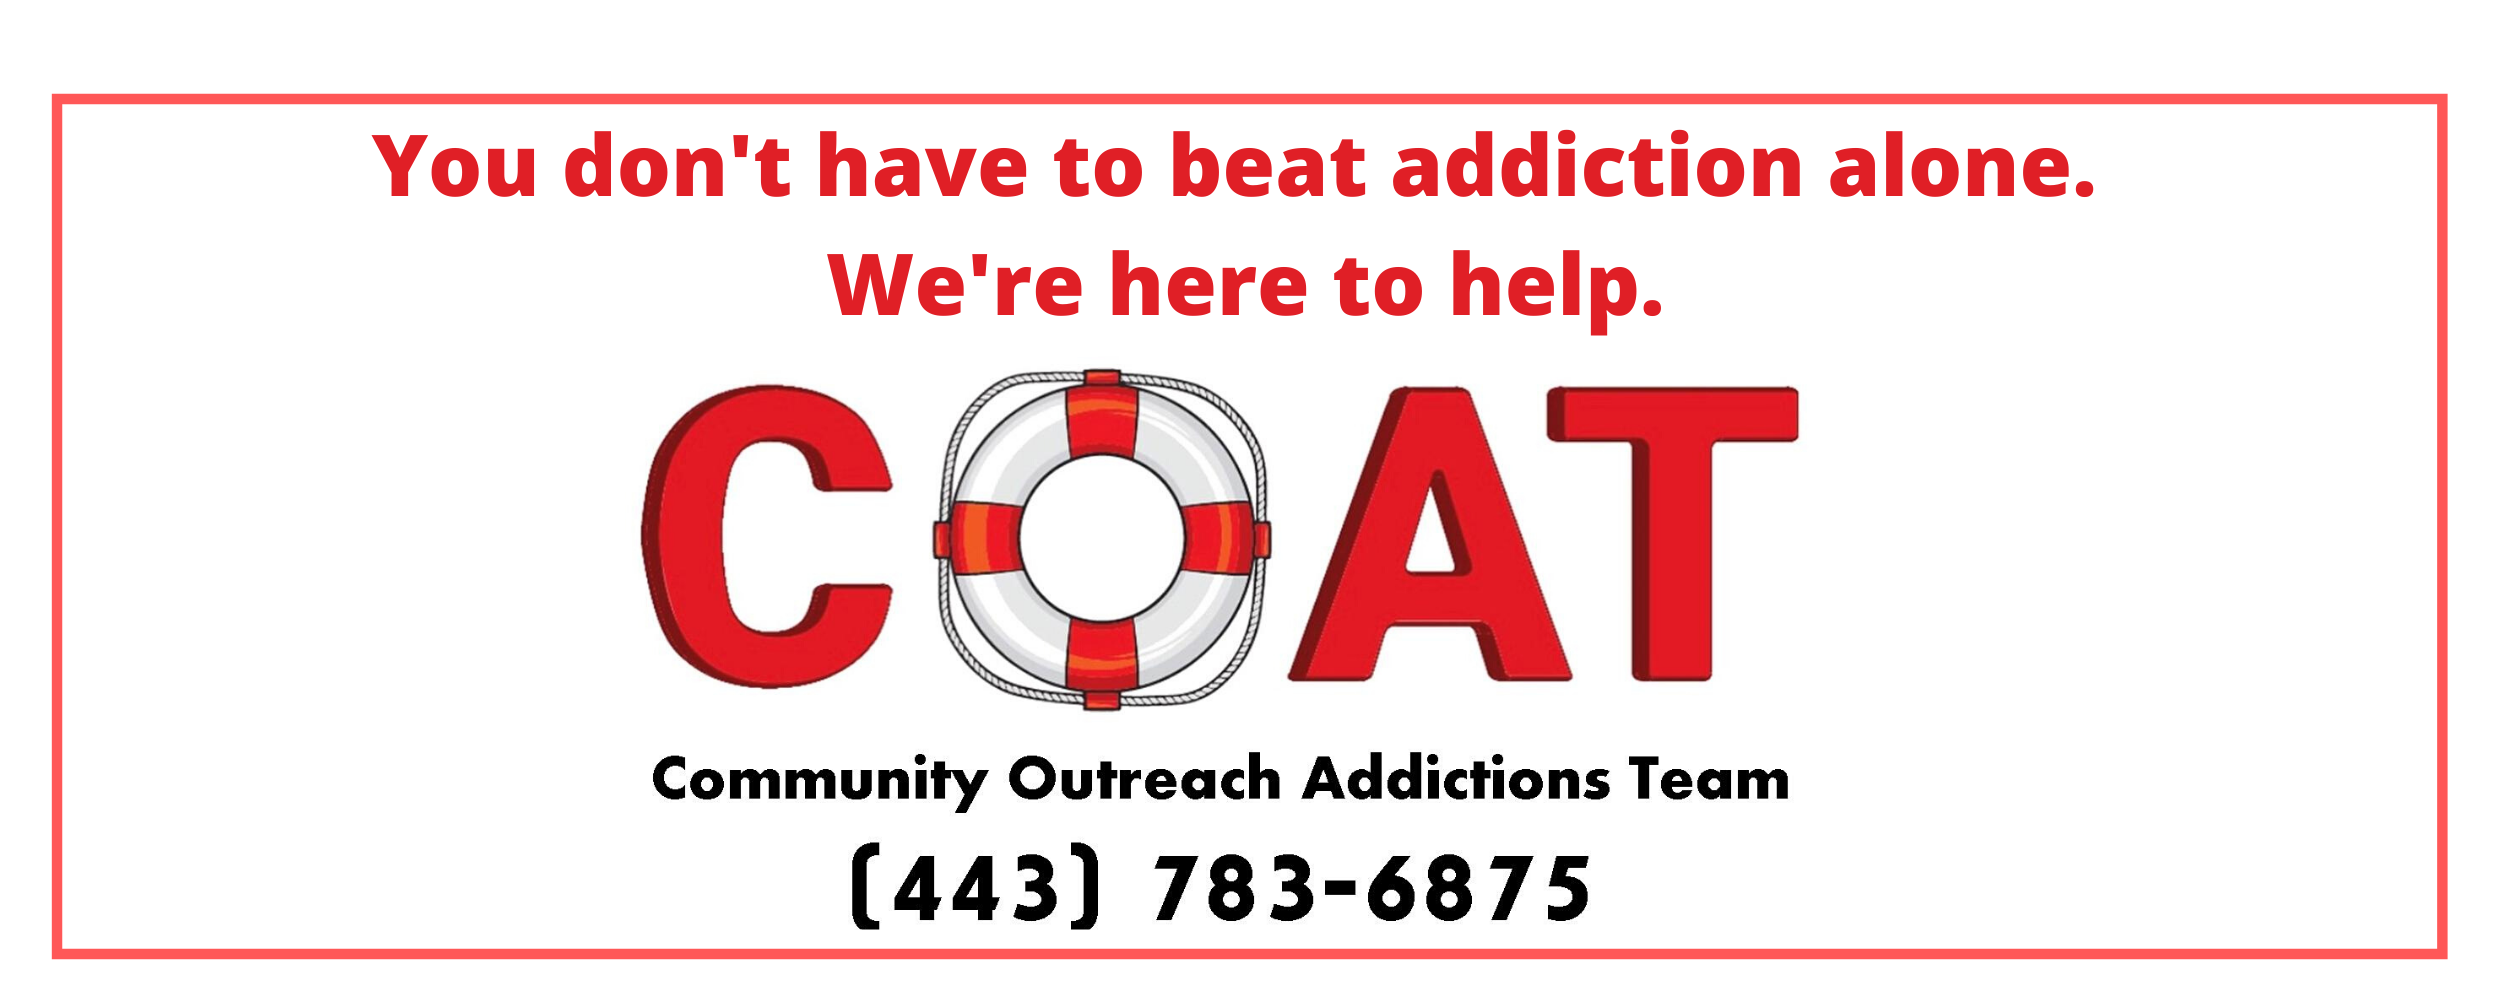 You don't have to beat addiction alone. Community Outreach Addictions Team 443-738-6875